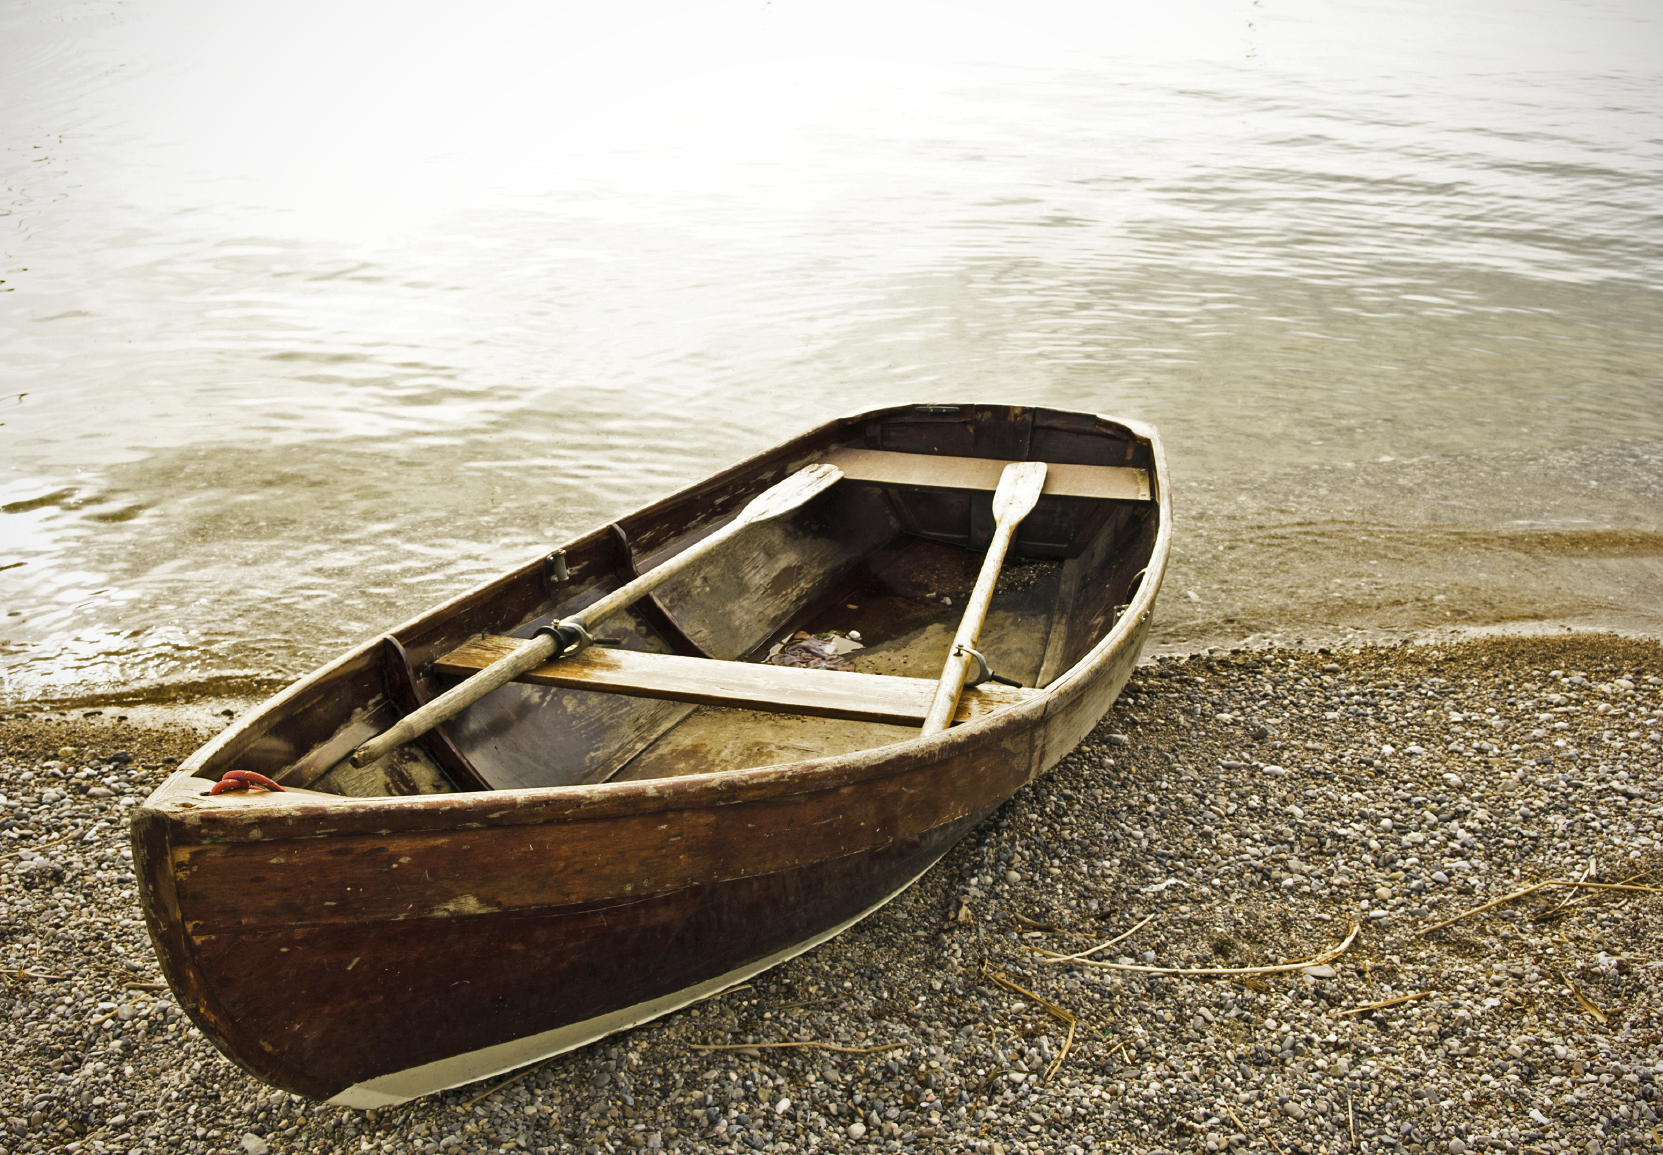 Repurpose Your Old Boat | Without A Hitch